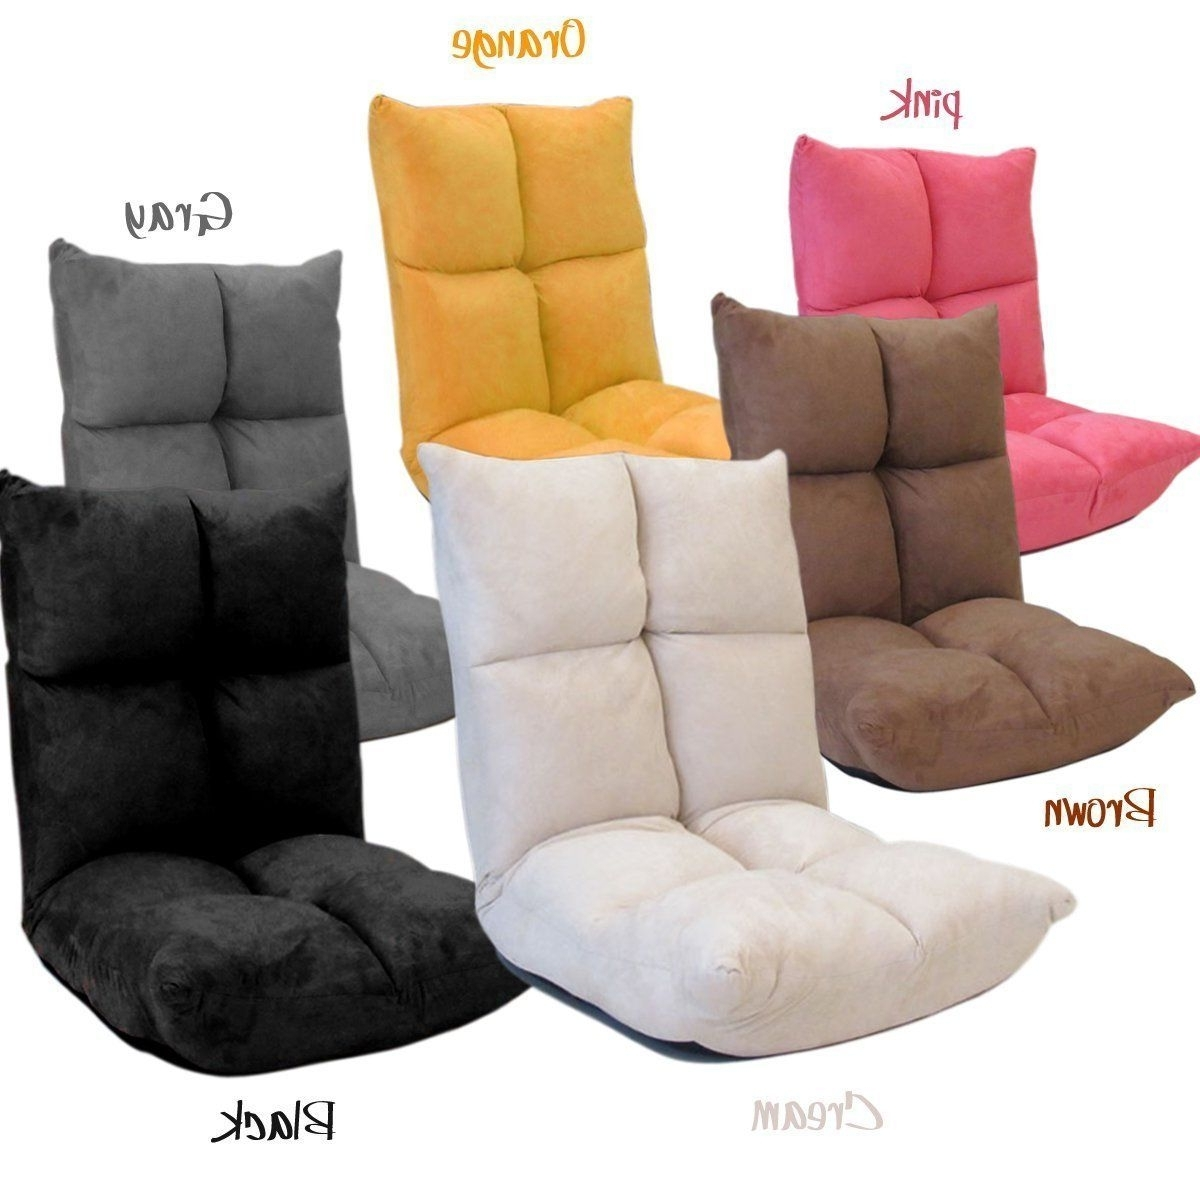 Fold Up Sofa Chairs For Preferred Futon Chair/gaming Chair ~ The Back Rest Can Be Adjusted Into (View 5 of 15)